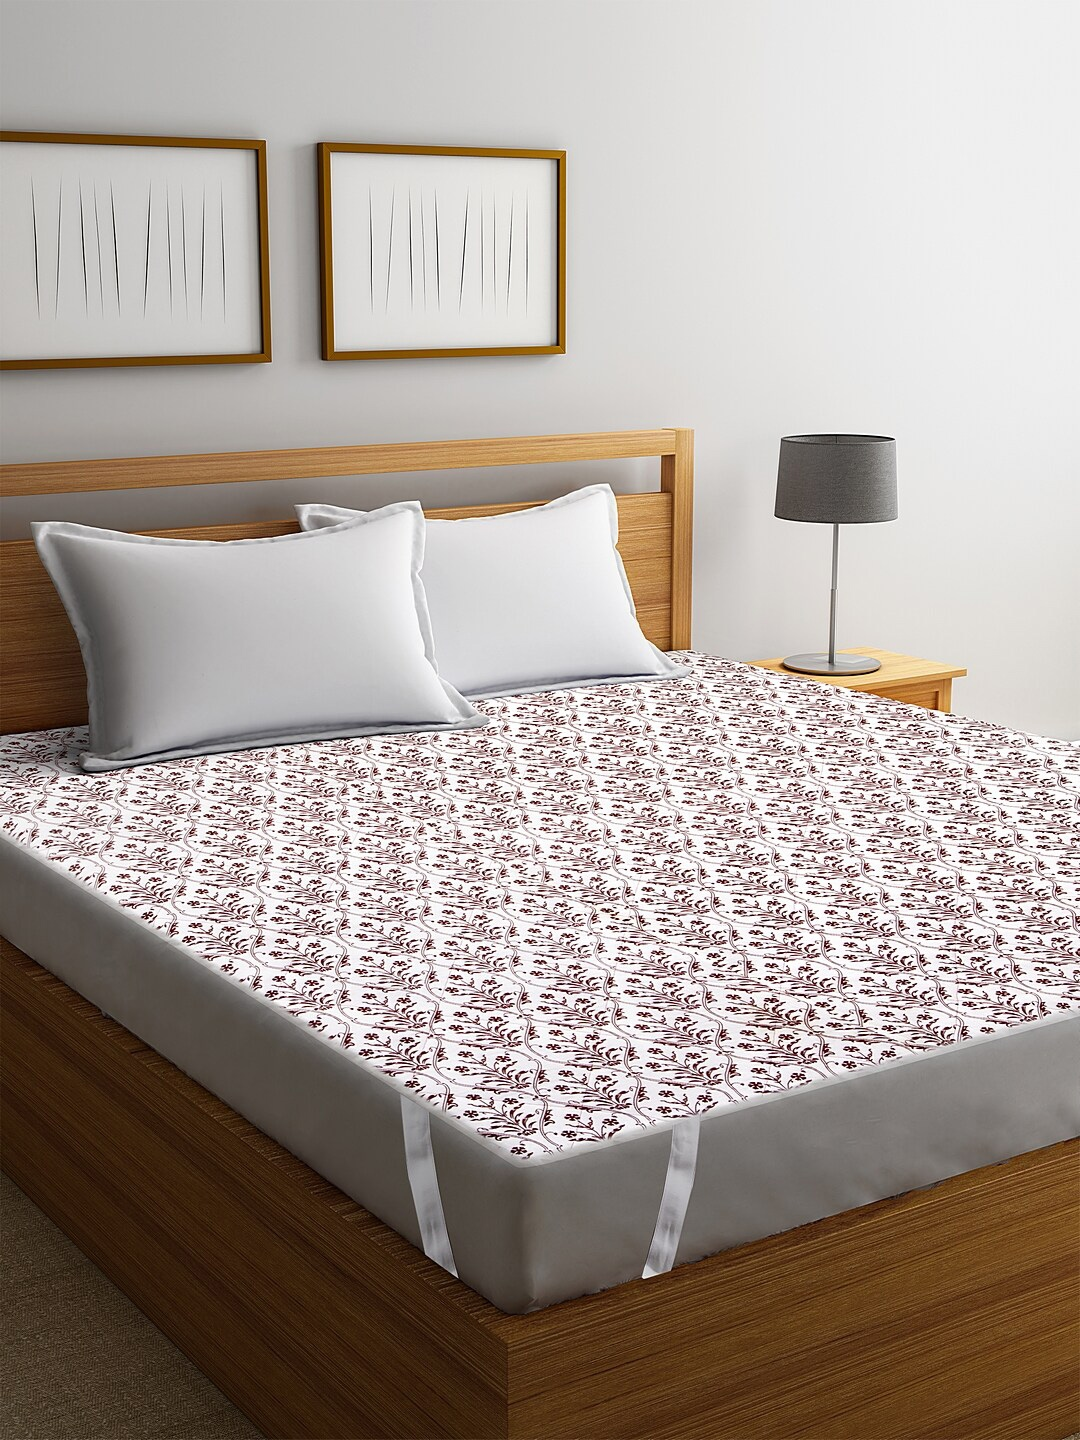 Rajasthan Decor White Screen Print Quilted Double Bed Mattress Protector